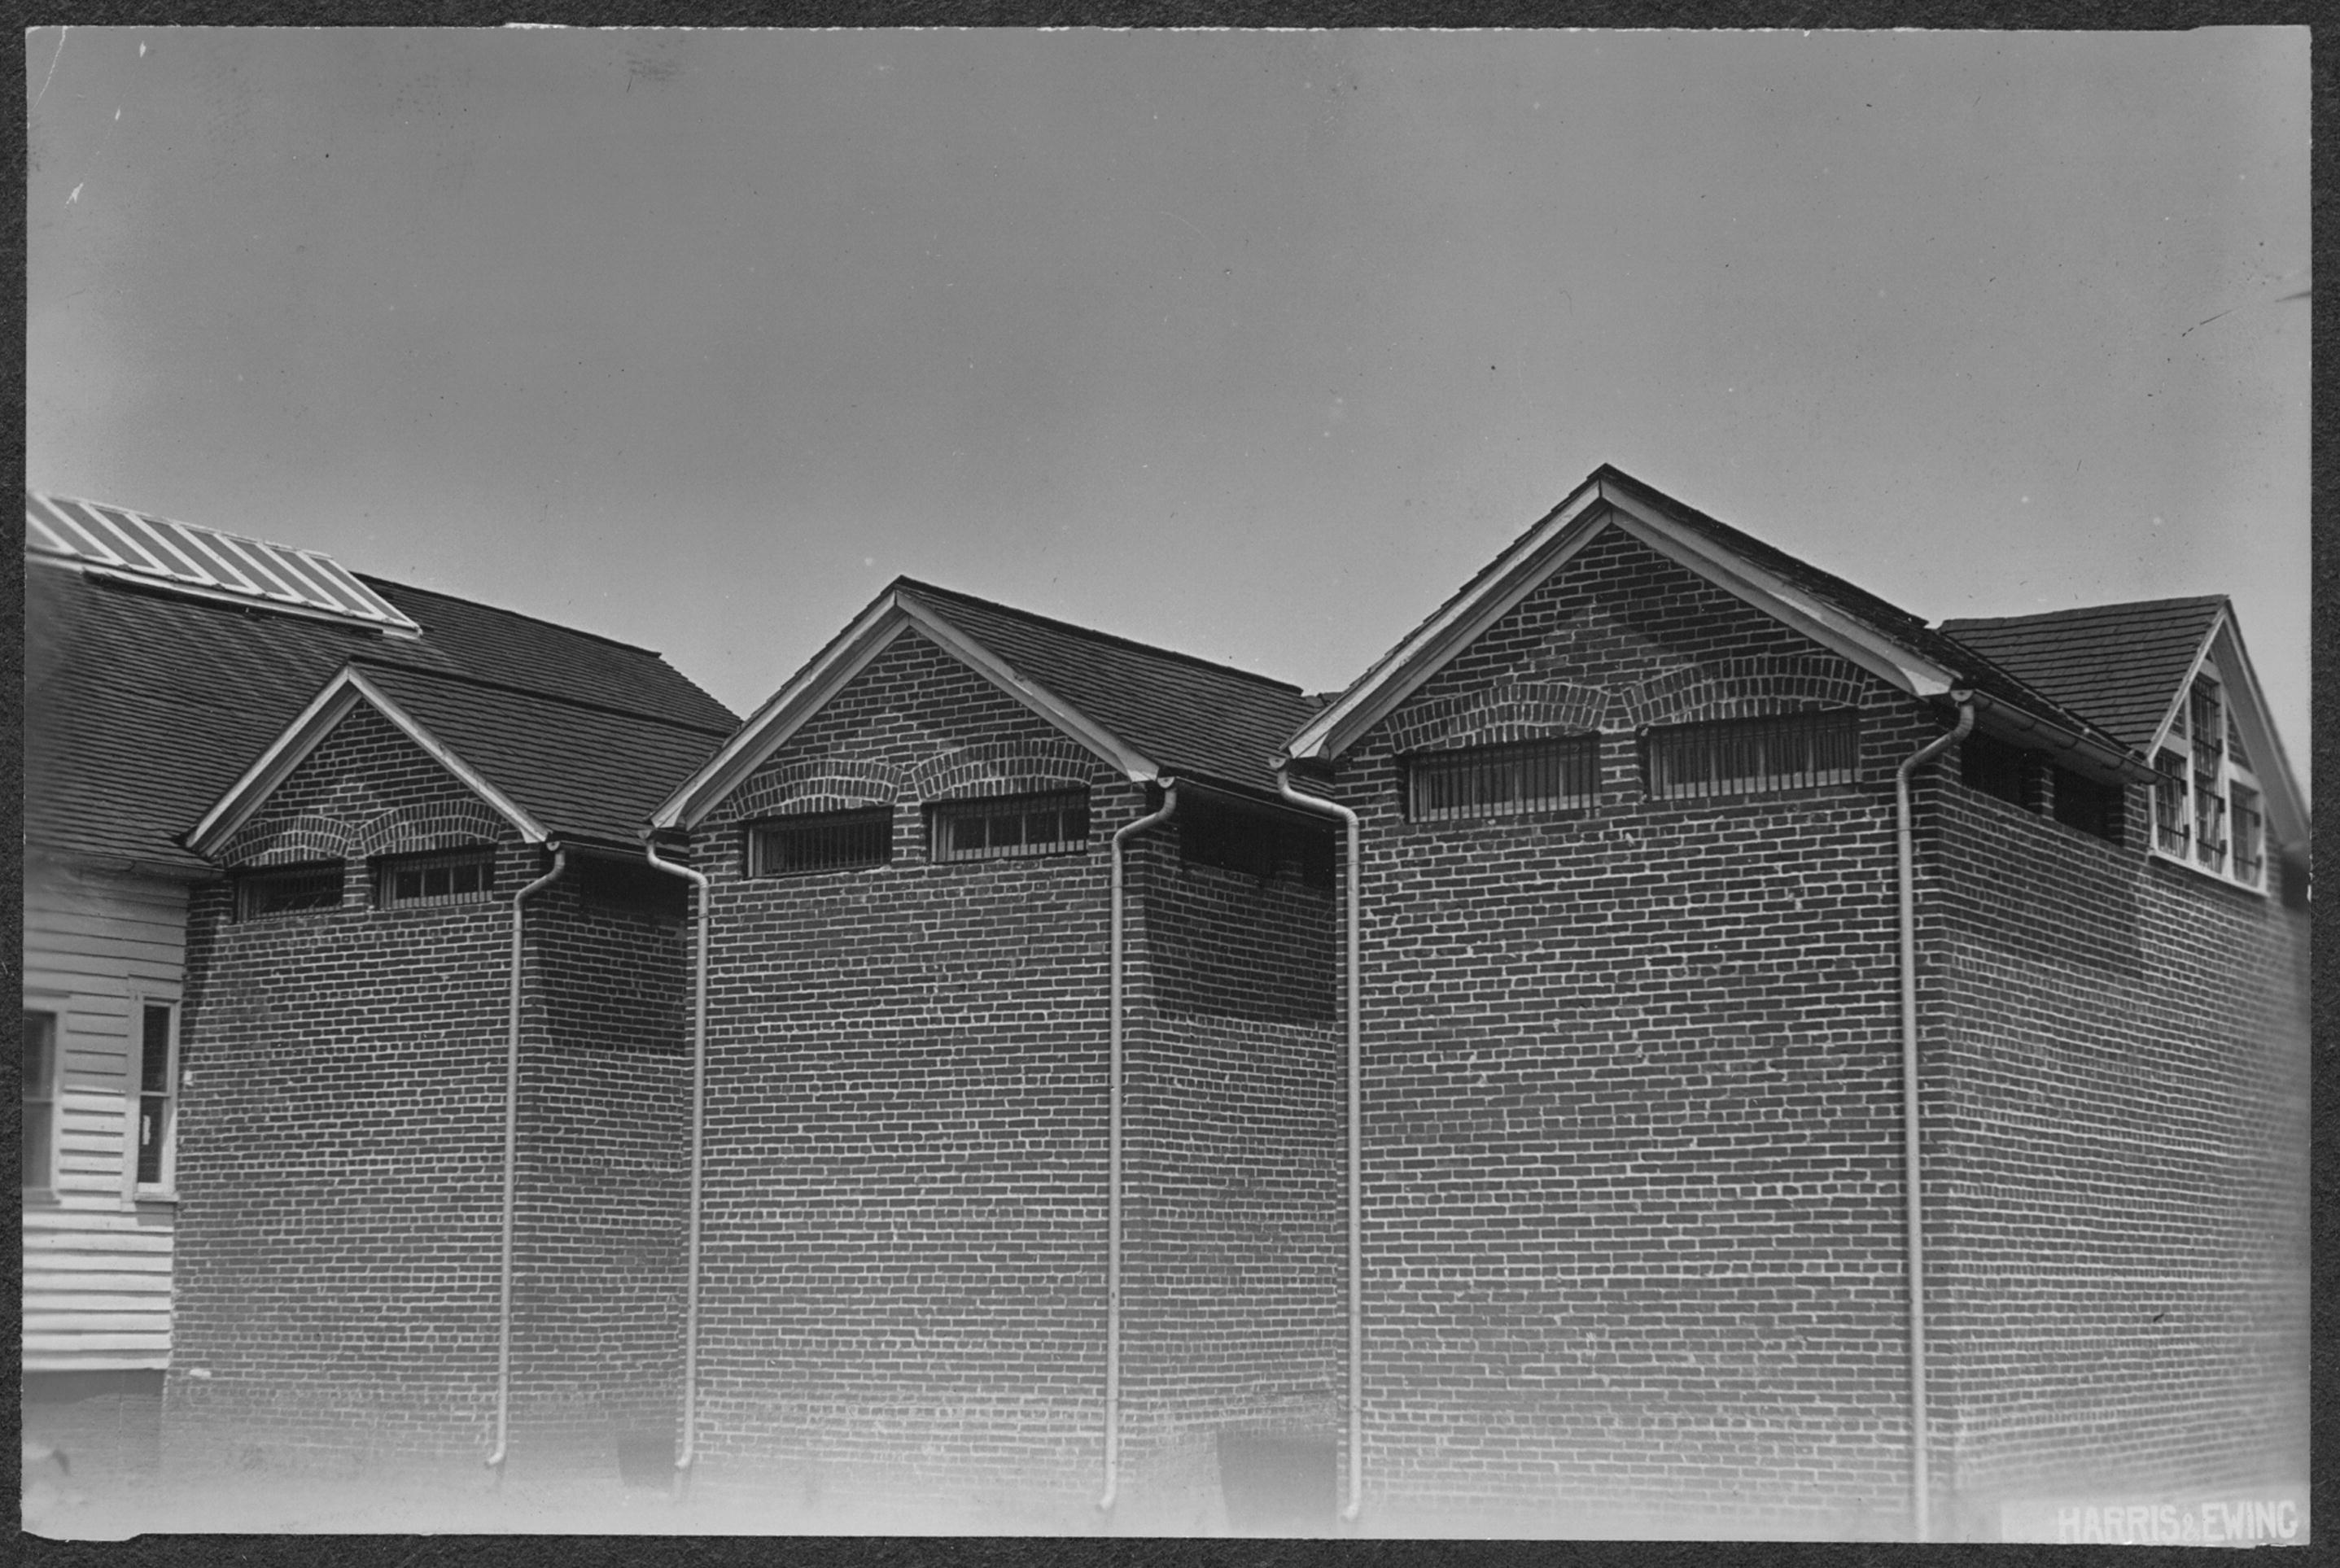 Cell blocks at Occoquan Workhouse by Harris & Ewing photographers (Library of Congress, public domain)